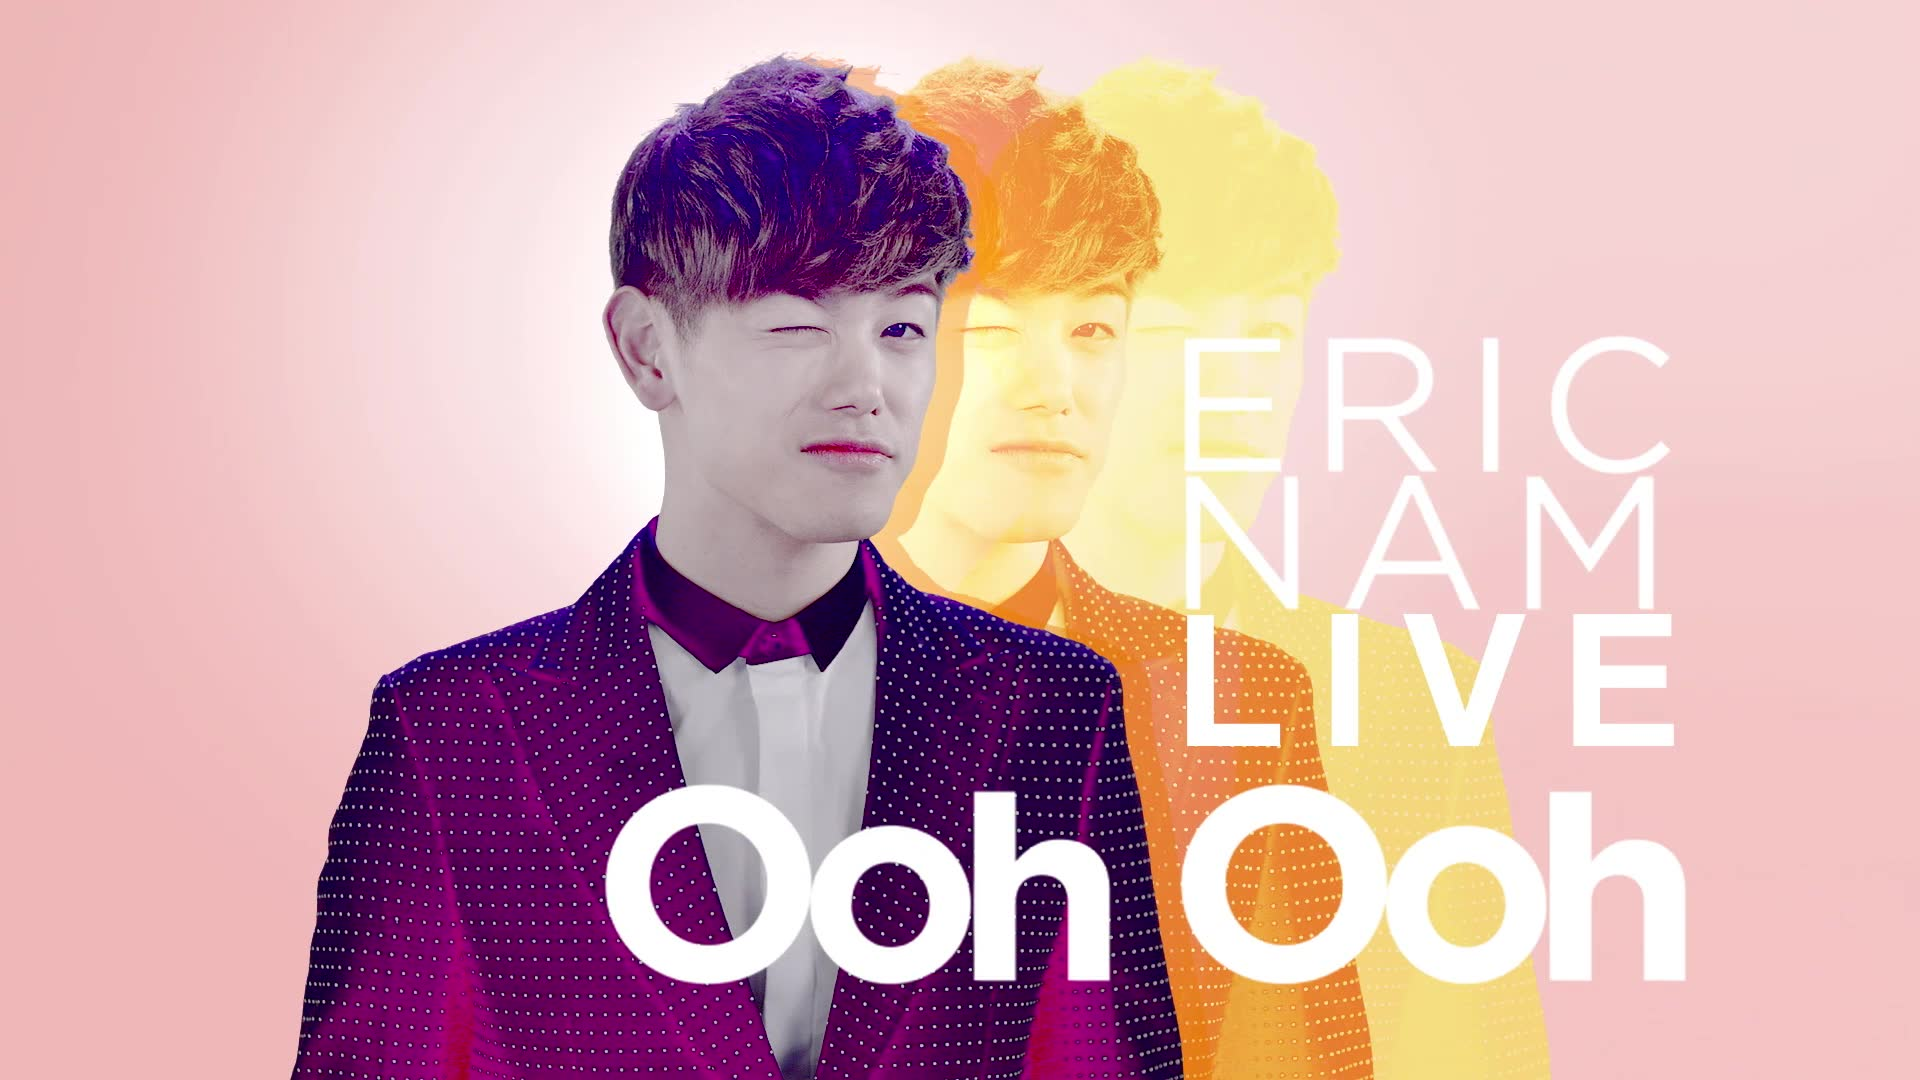 Eric Nam Videos: Ooh Ooh (Feat. Hoya of Infinite)